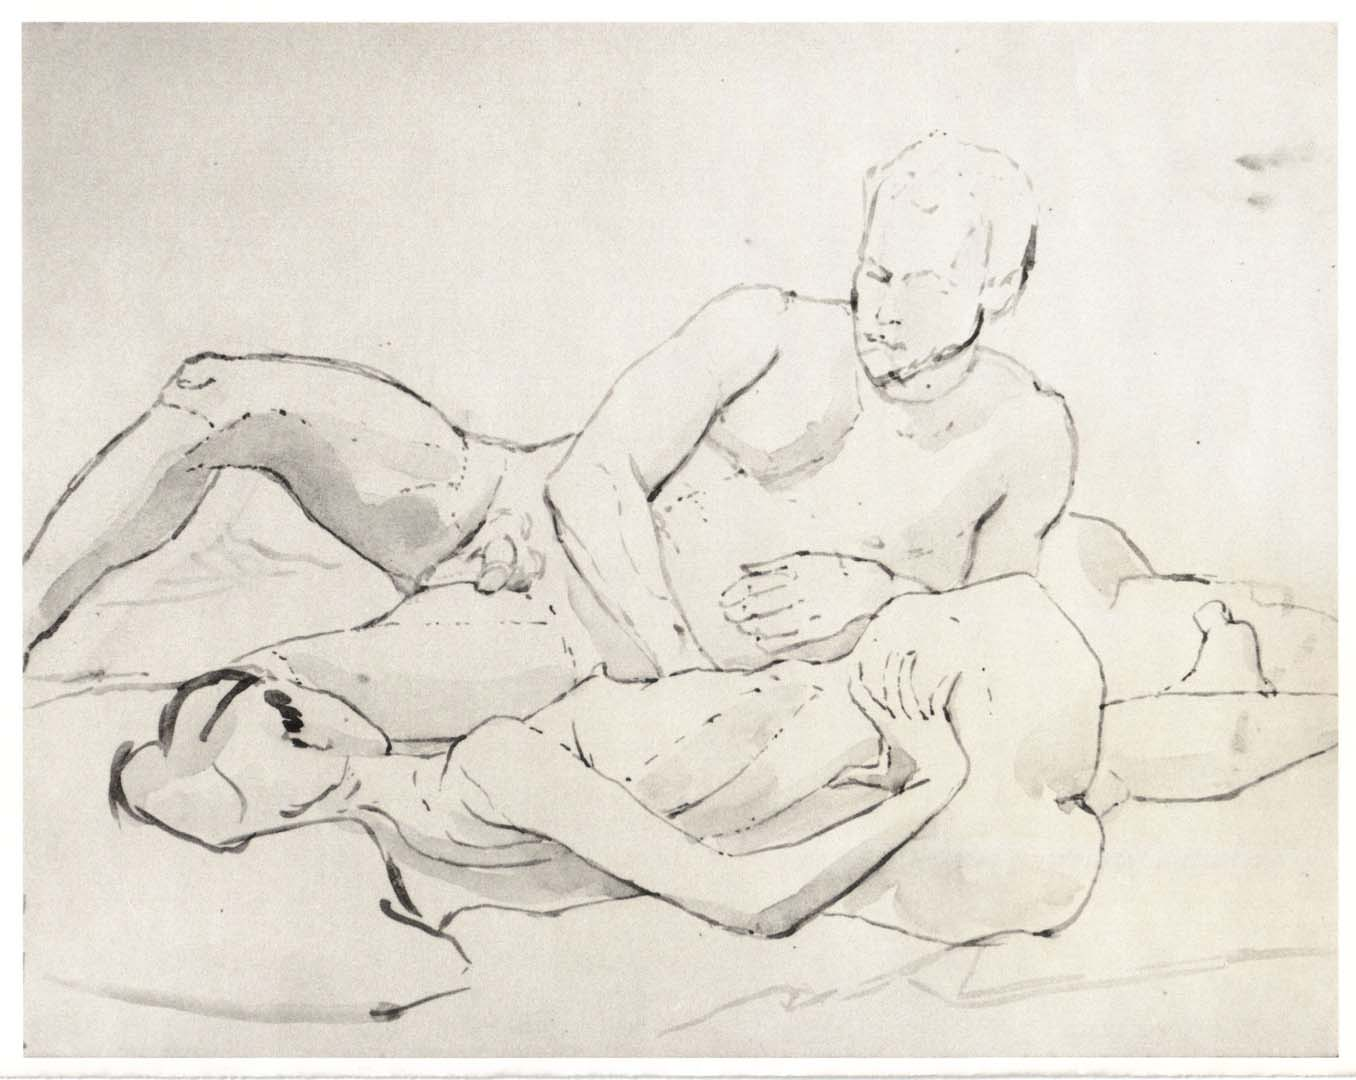 1961 Reclining Male and Female Models Wash on Paper 10.75 x 13.75